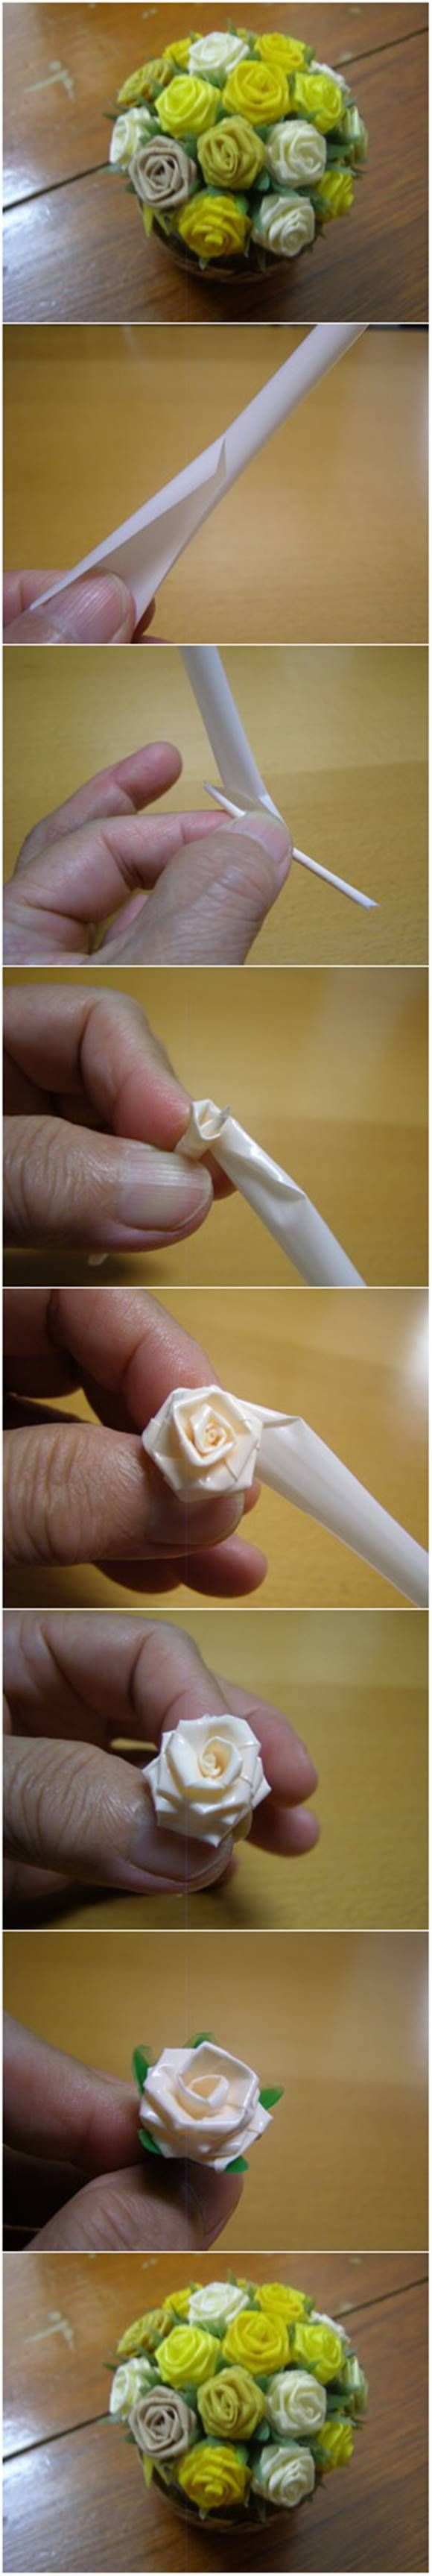 How to Make Beautiful Roses from Drinking Straws #craft #decor #flower